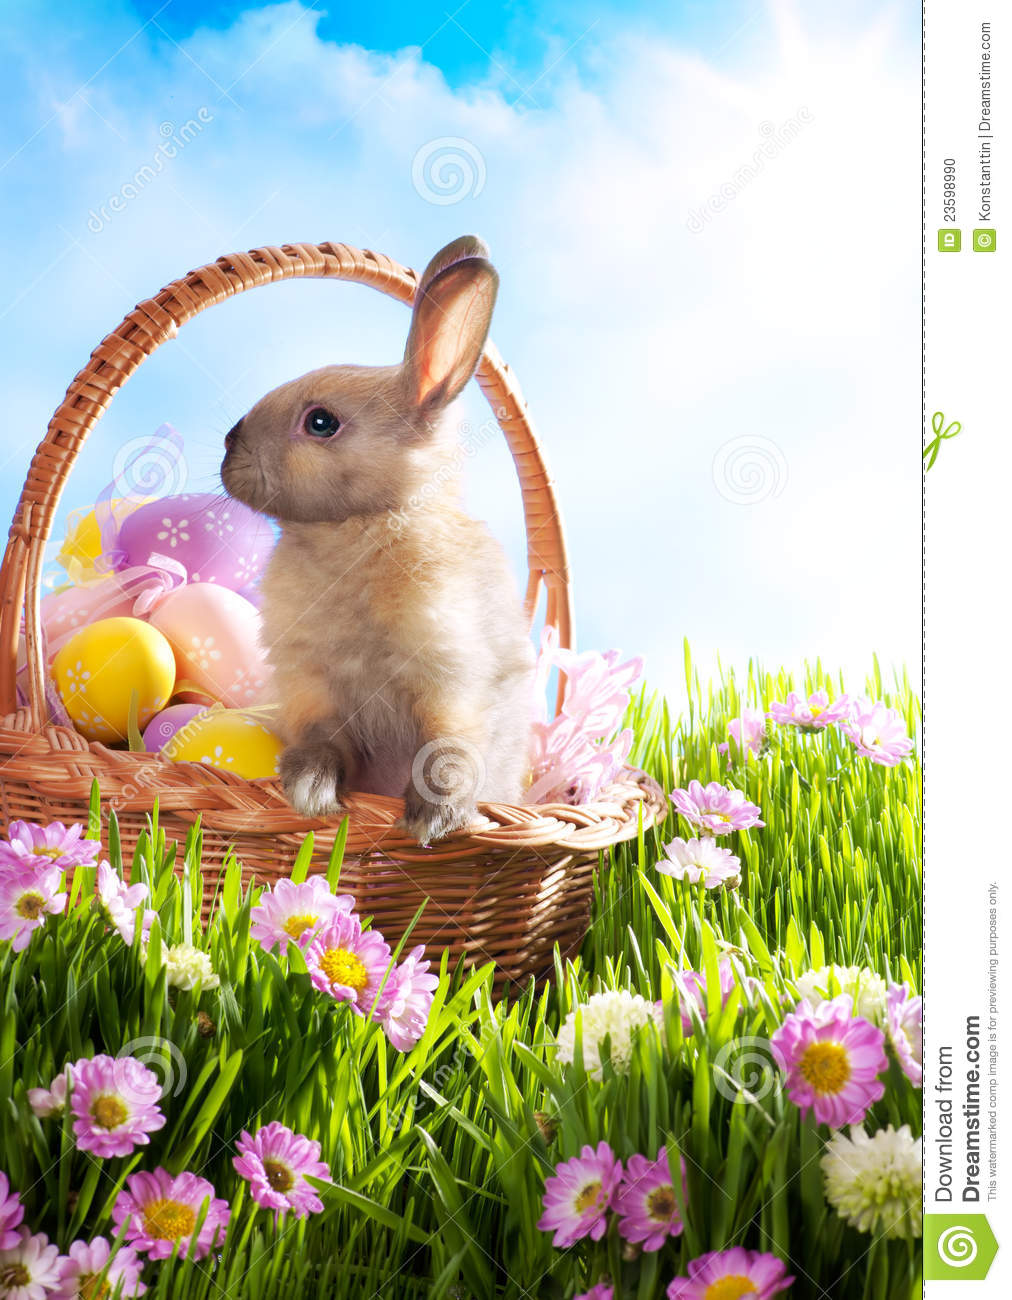 Easter Basket Decorated Eggs And Easter Bunny Stock Photo - Image ... for Real Easter Bunny With Eggs  177nar